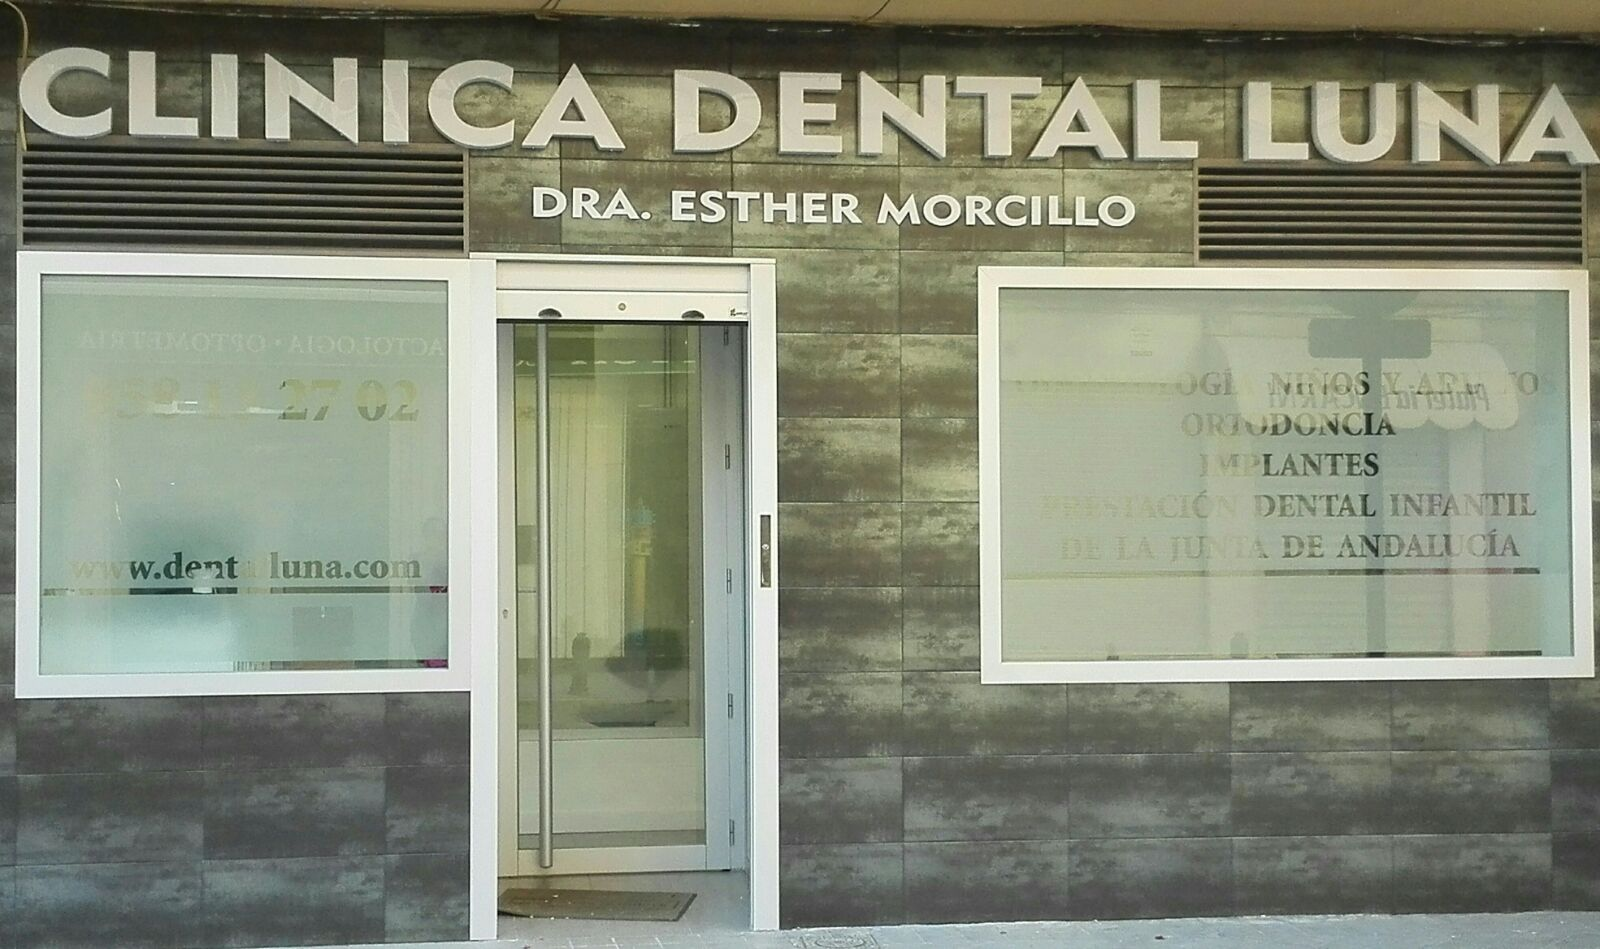 Exterior Clinica Dental Luna